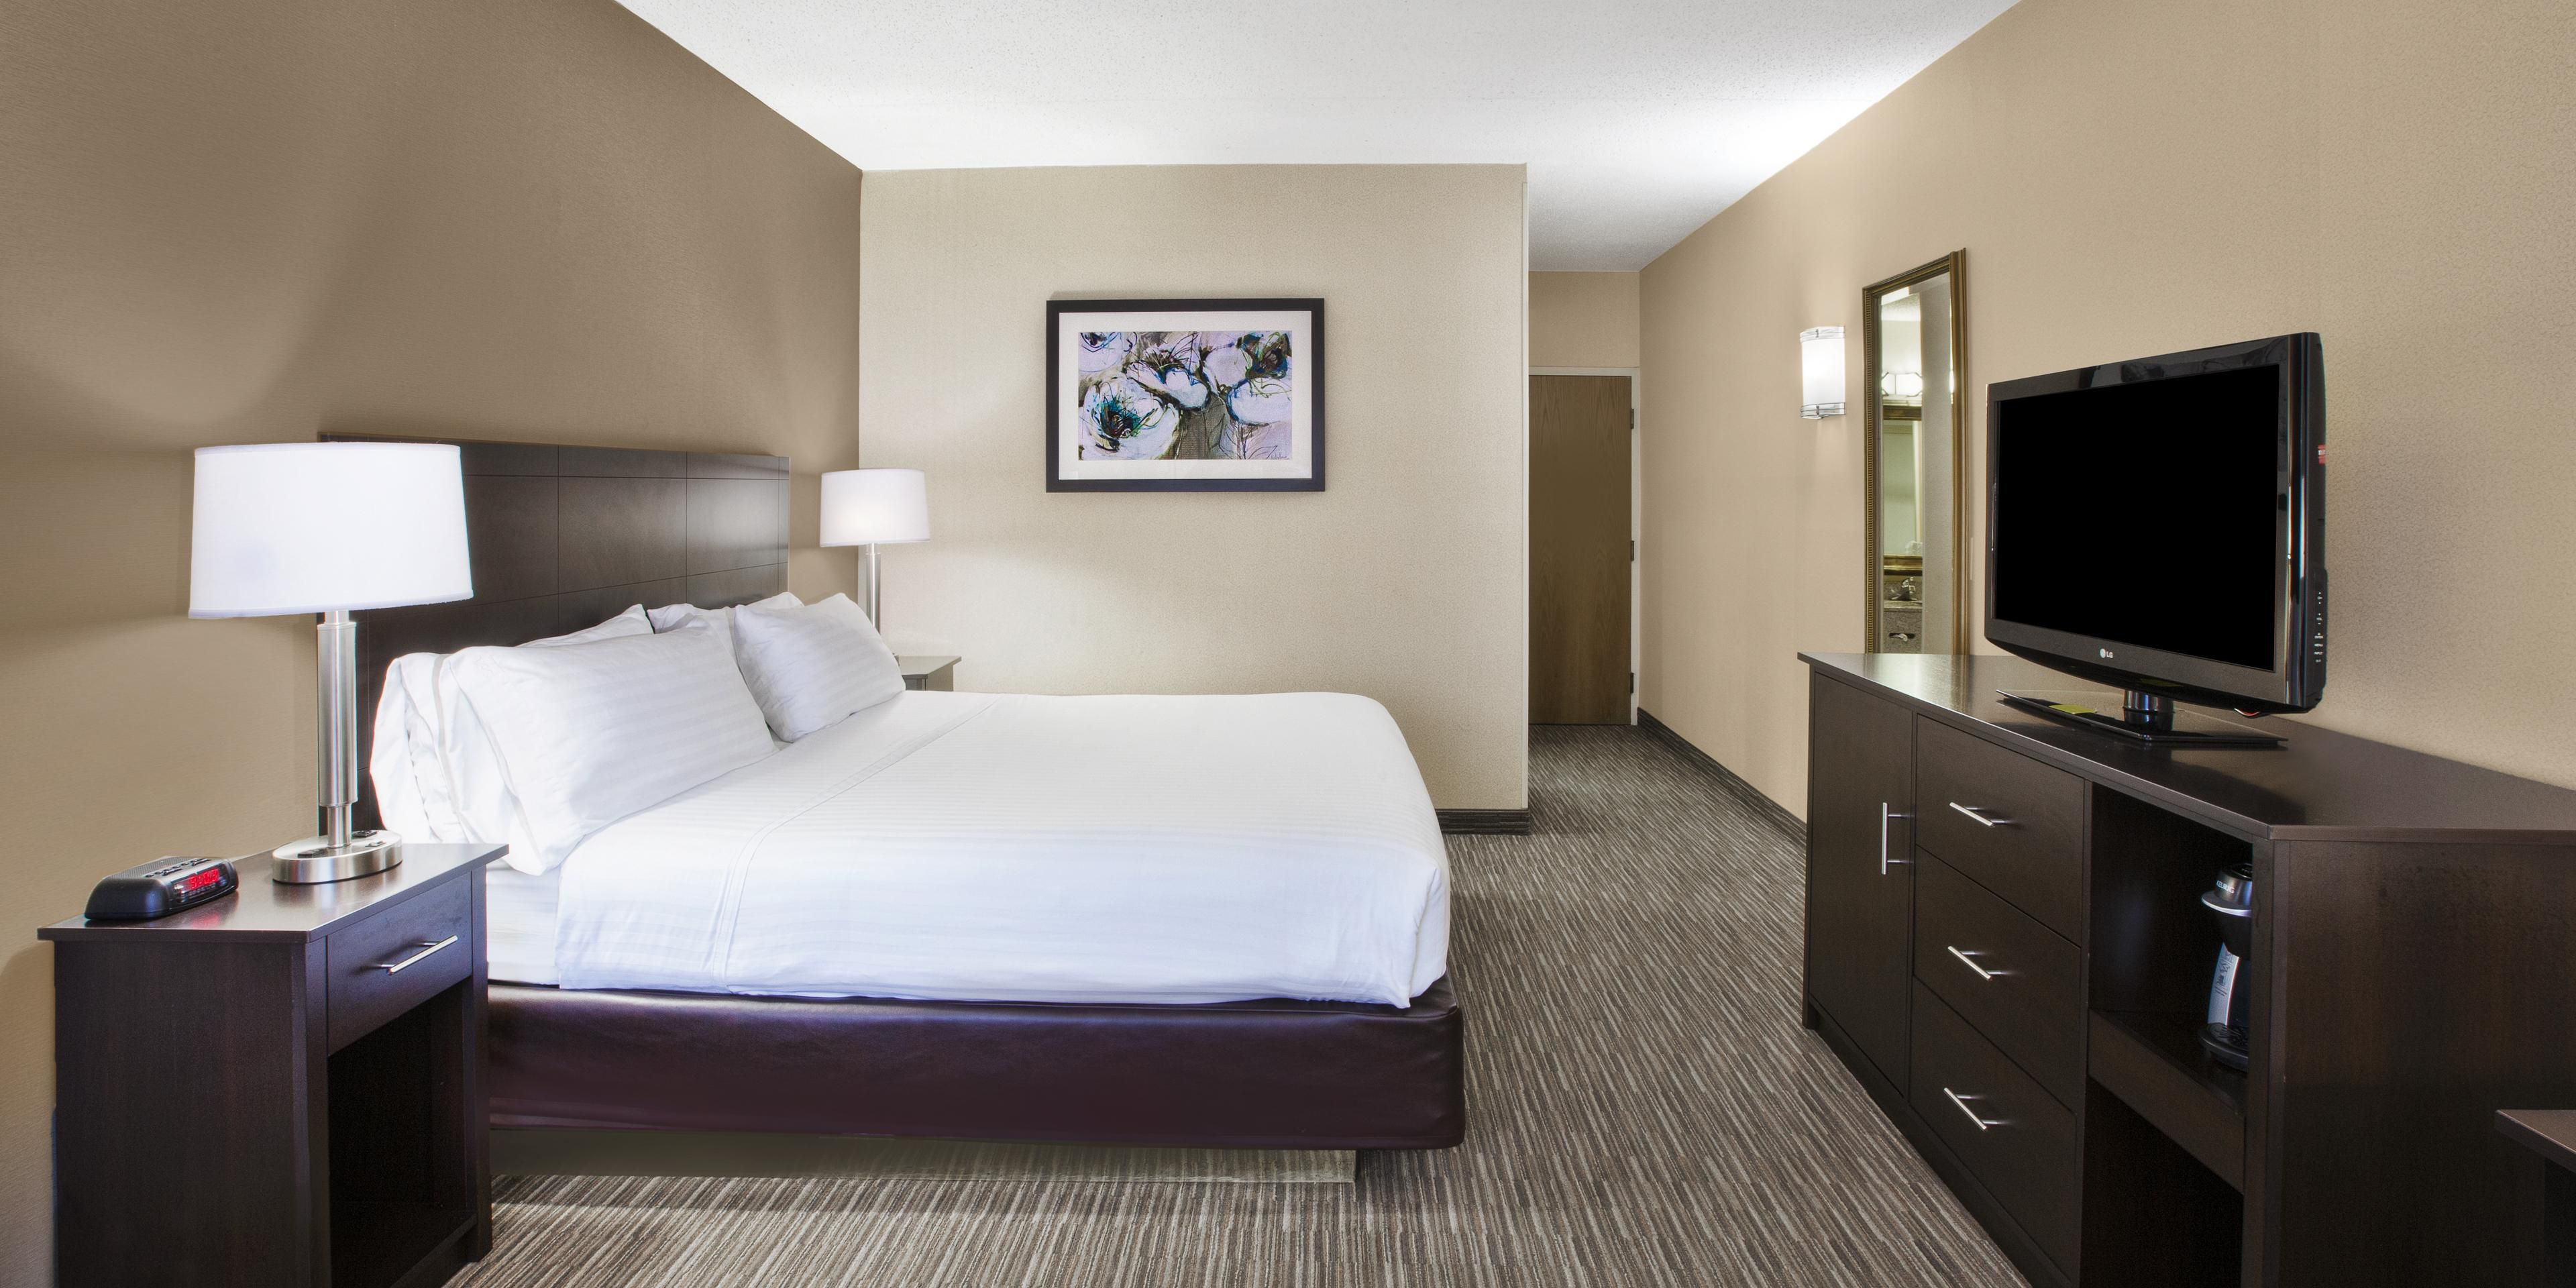 cheap hotel renaissance at the dtwdt city rooms view in detroit travel center king guest room clsc hor marriott guestroom hotels